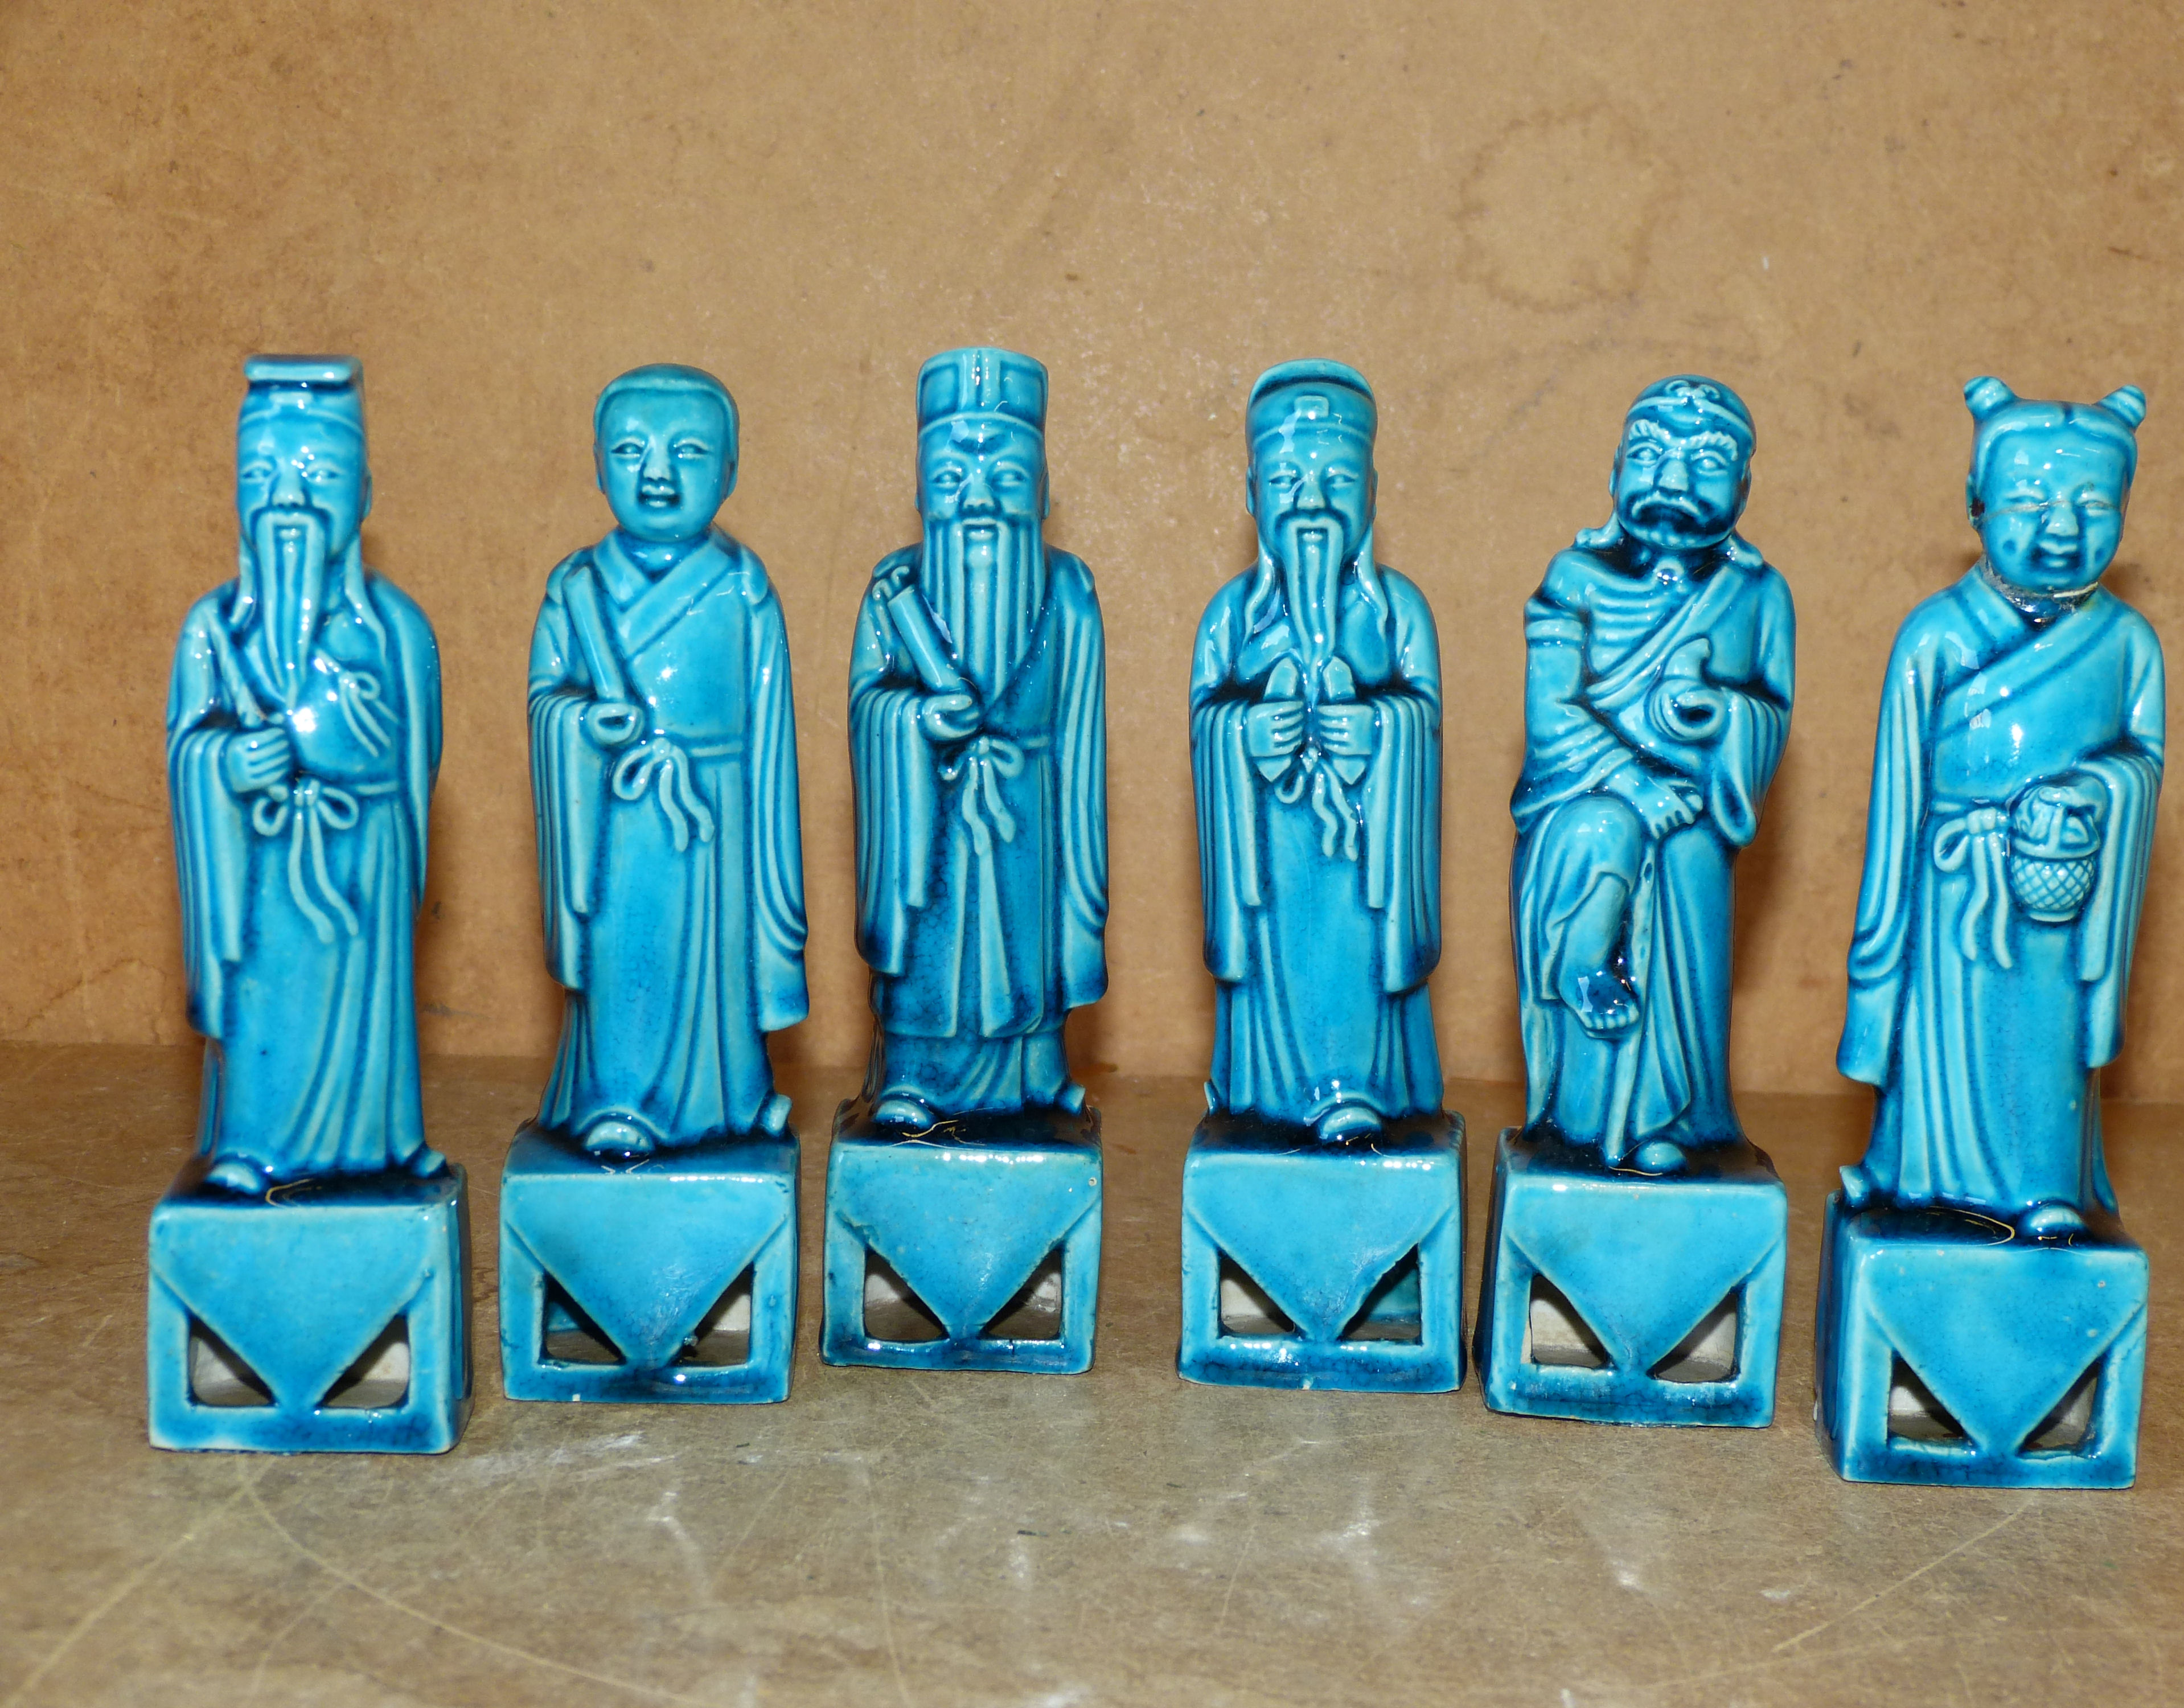 A Set of 6 Oriental China Figures on turquoise ground standing on platforms